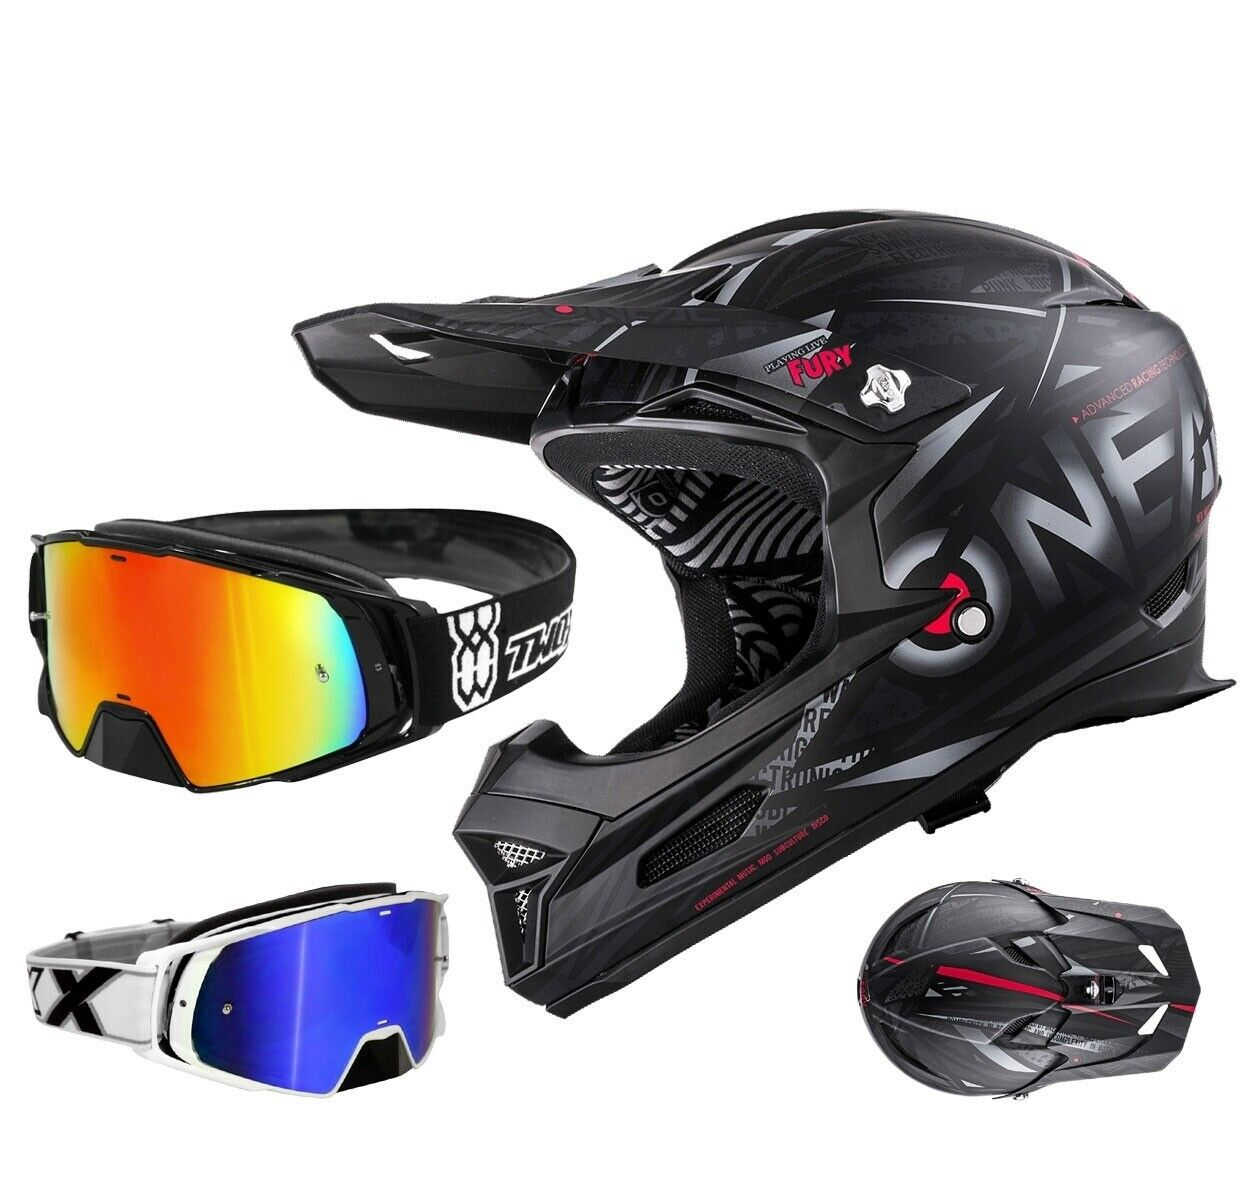 Oneal Fury synthy downhill casco negro DH mountainbike two-X Rocket crossbrille